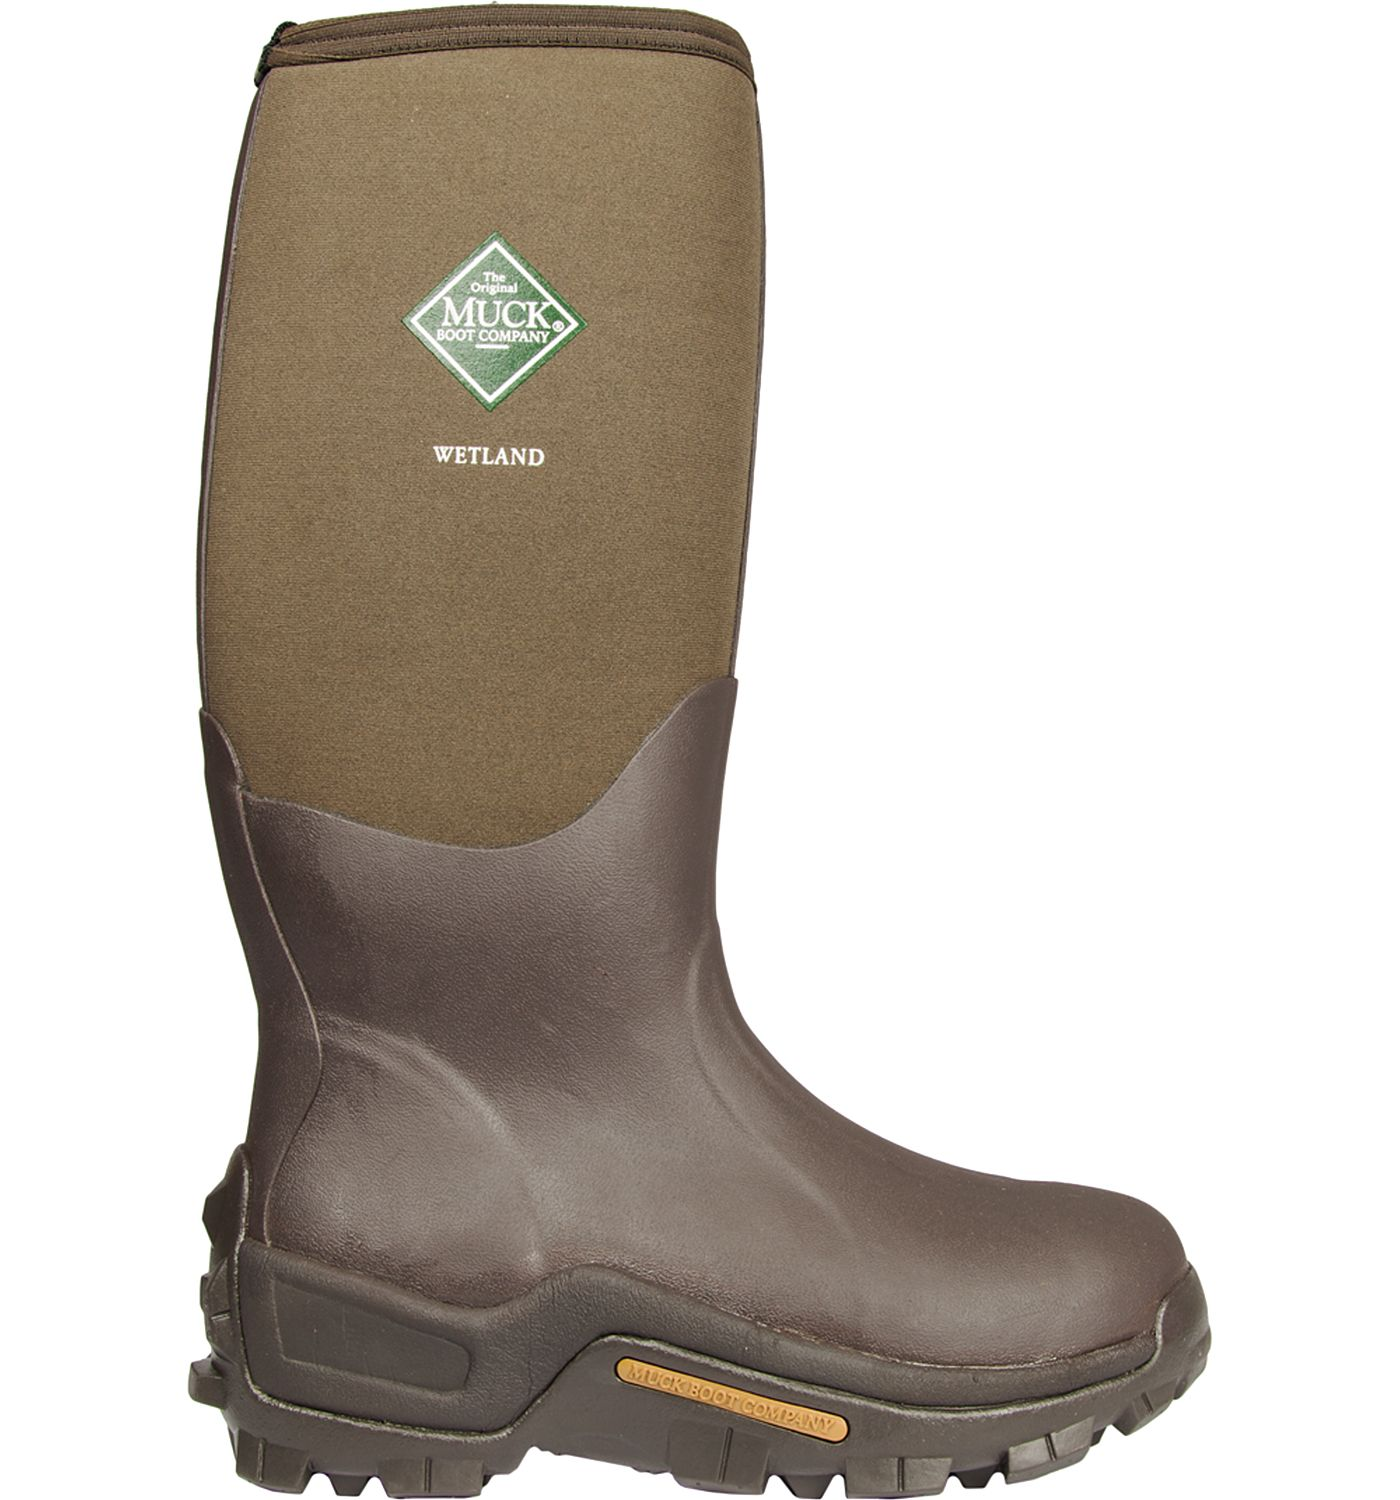 Muck Boots Company Men's Wetland Rubber Hunting Boots